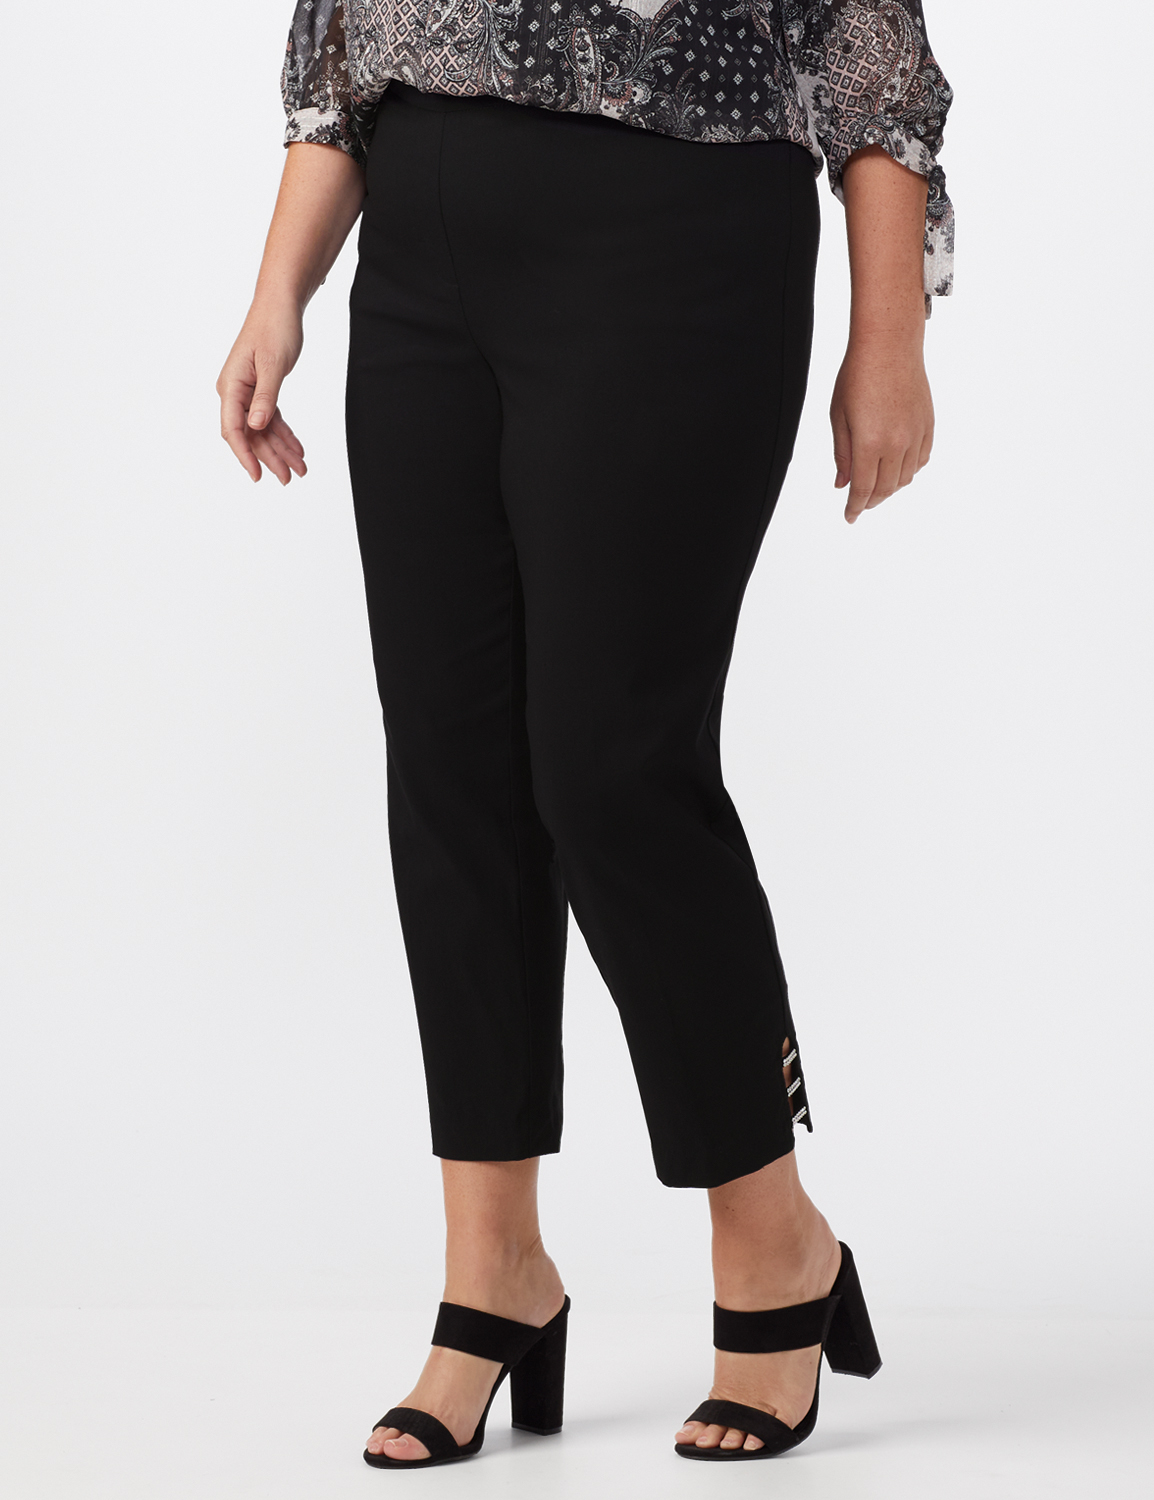 Pull On Crop Ankle Pants with Novelty Rhinestone Trim at Hem -Black - Front